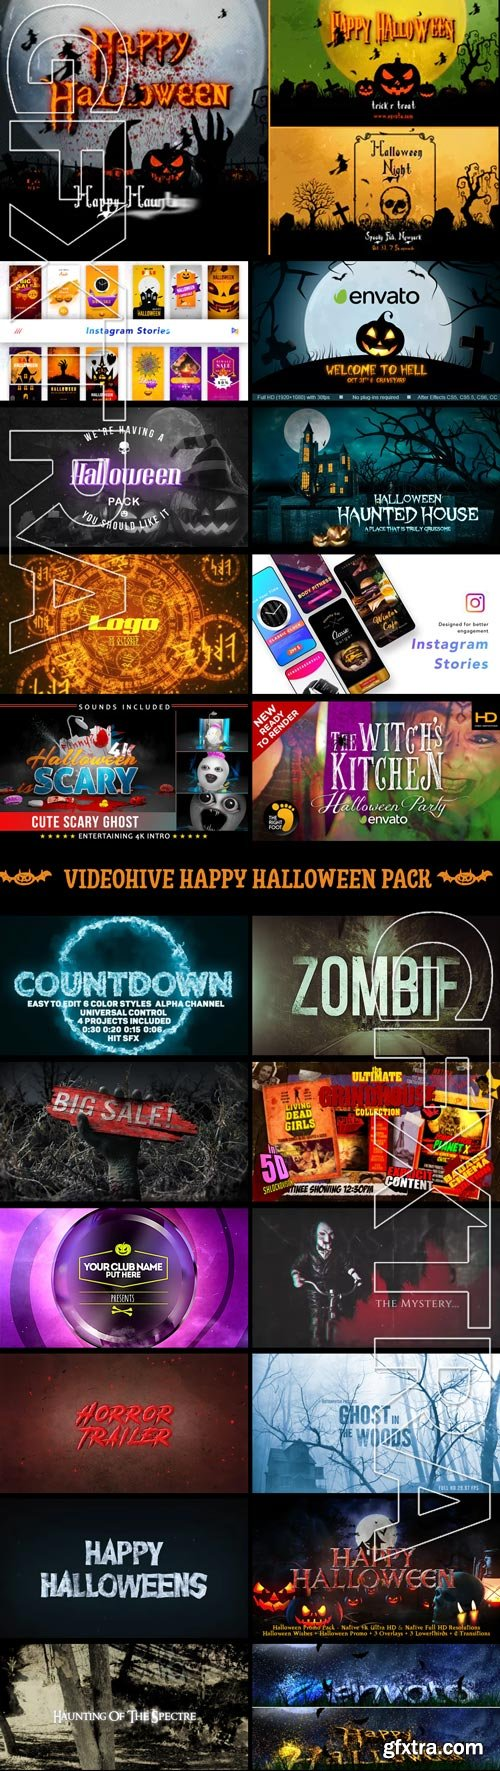 Videohive - Happy Halloween Pack - Daily Update!